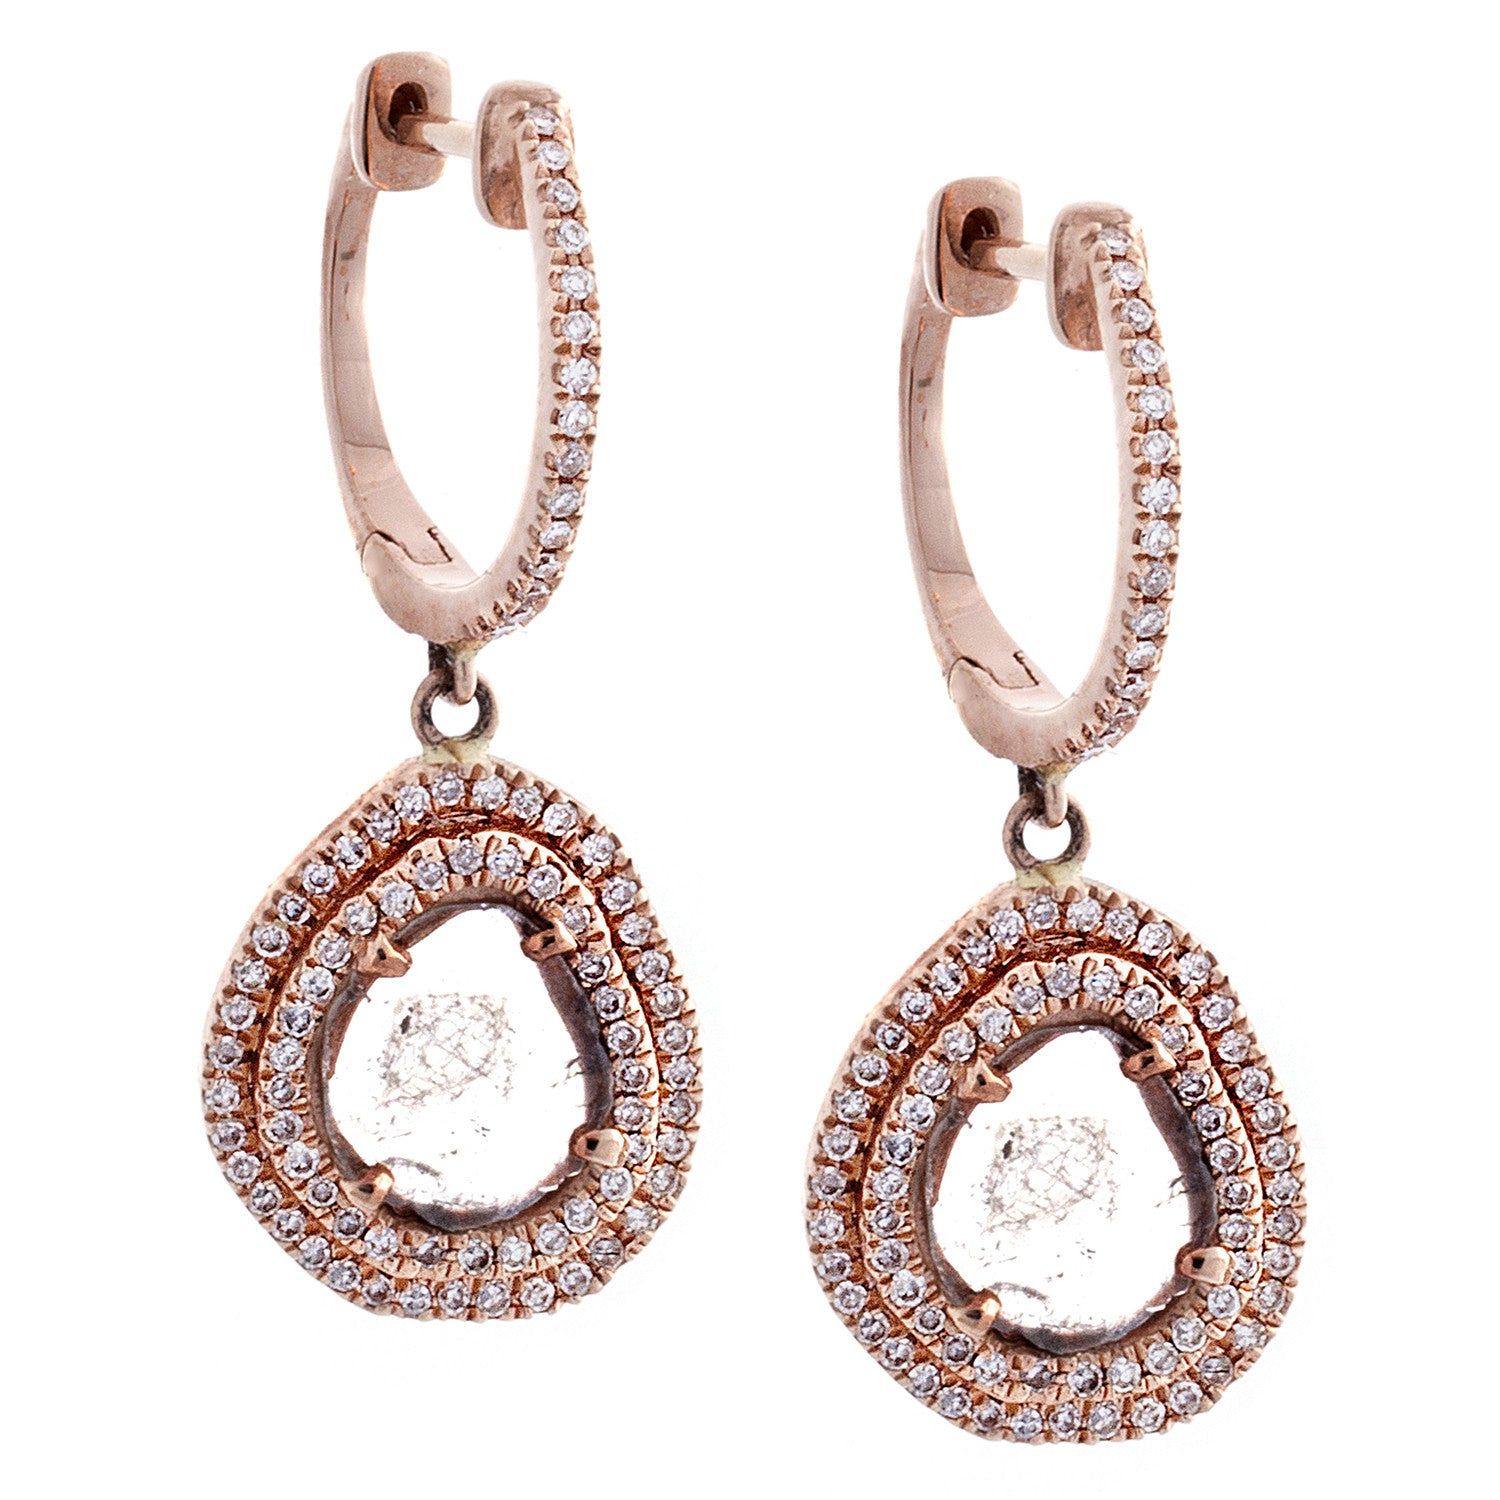 Sliced Diamond, Pavé & 14K Rose Gold Drop Earrings-SOLD/CAN BE SPECIAL ORDERED WITH 4-6 WEEKS DELIVERY TIME FRAME